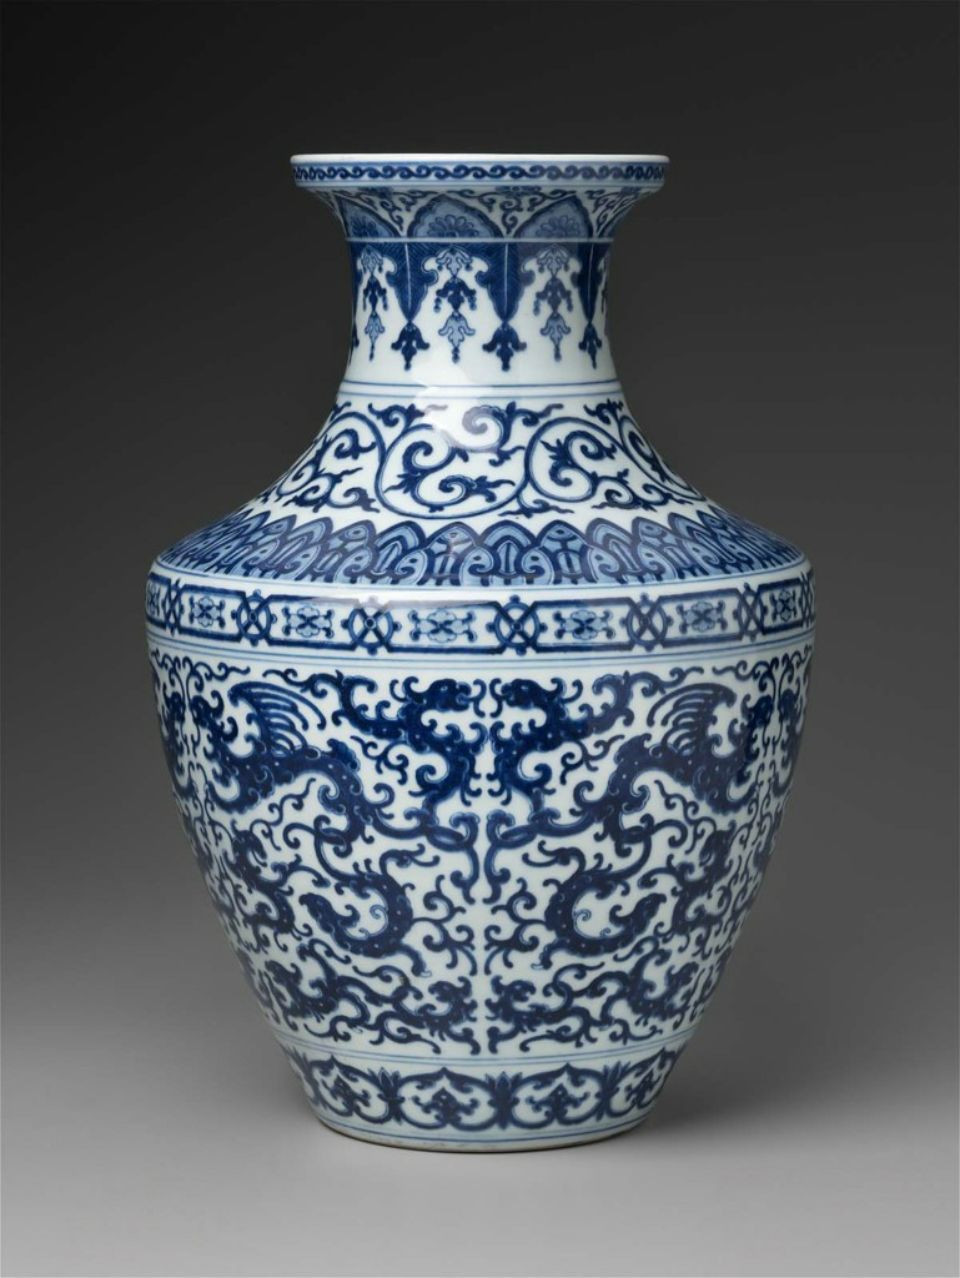 qianlong emperor vase of vase with blue white phoenix winged dragons chinese qing intended for vase with blue white phoenix winged dragons chinese qing dynasty qianlong period 1736 95 porcelain